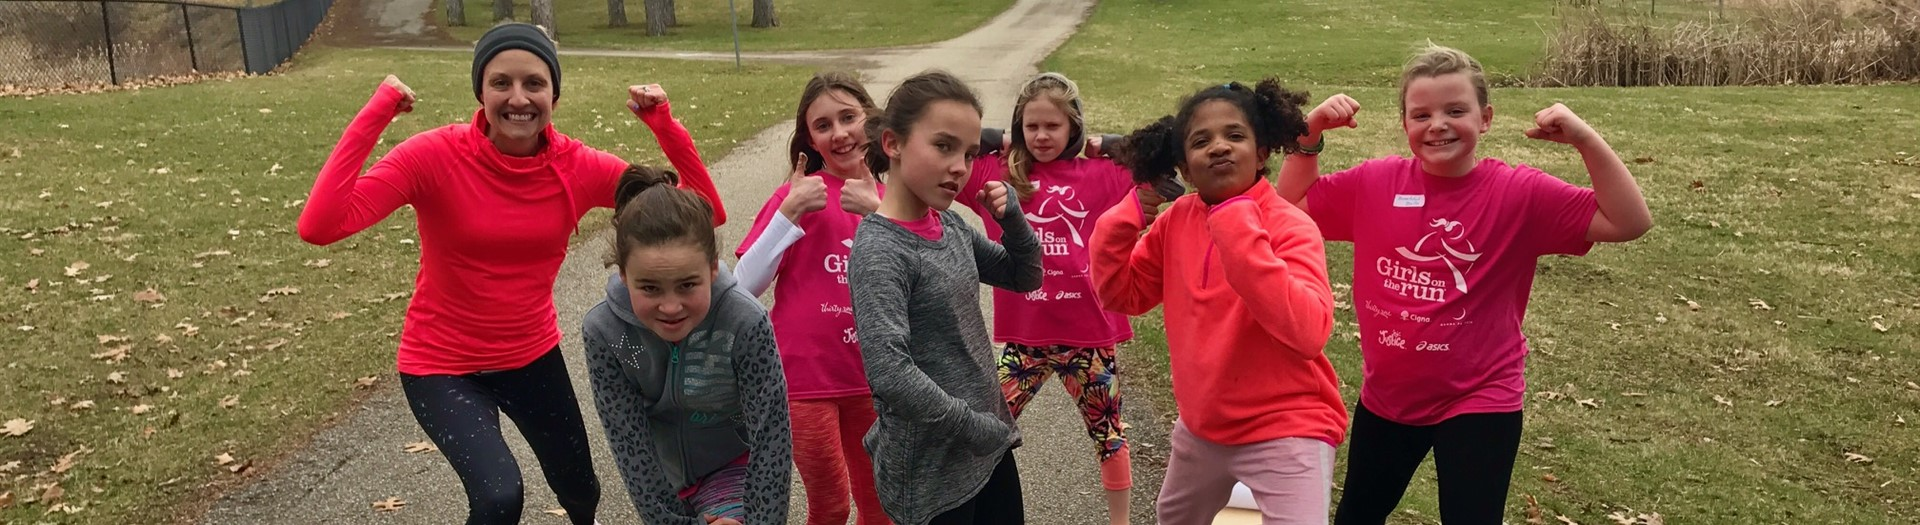 Girls on the Run Strike a Pose!